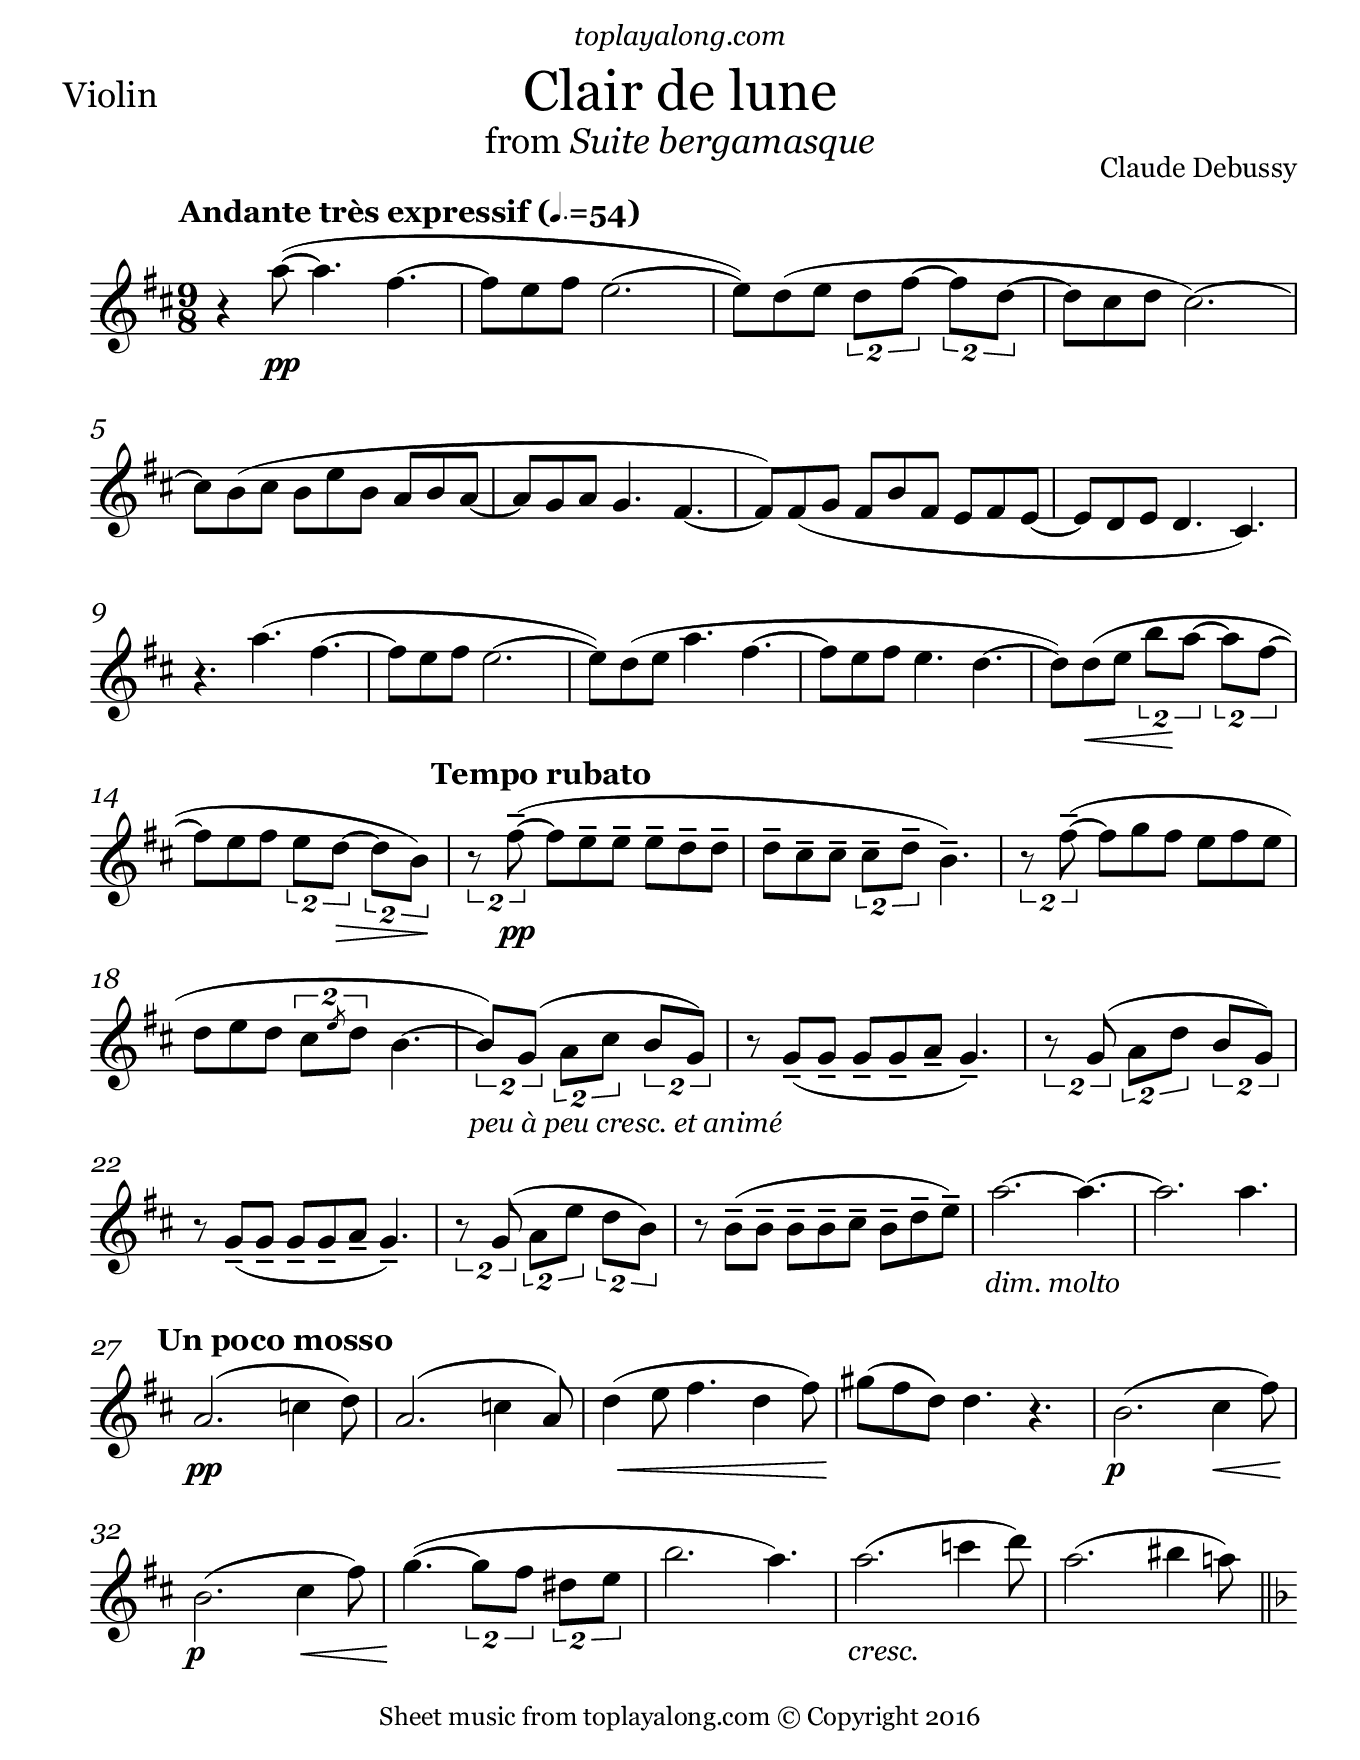 Clair de lune from Suite bergamasque by Debussy. Sheet music for Violin, page 1.